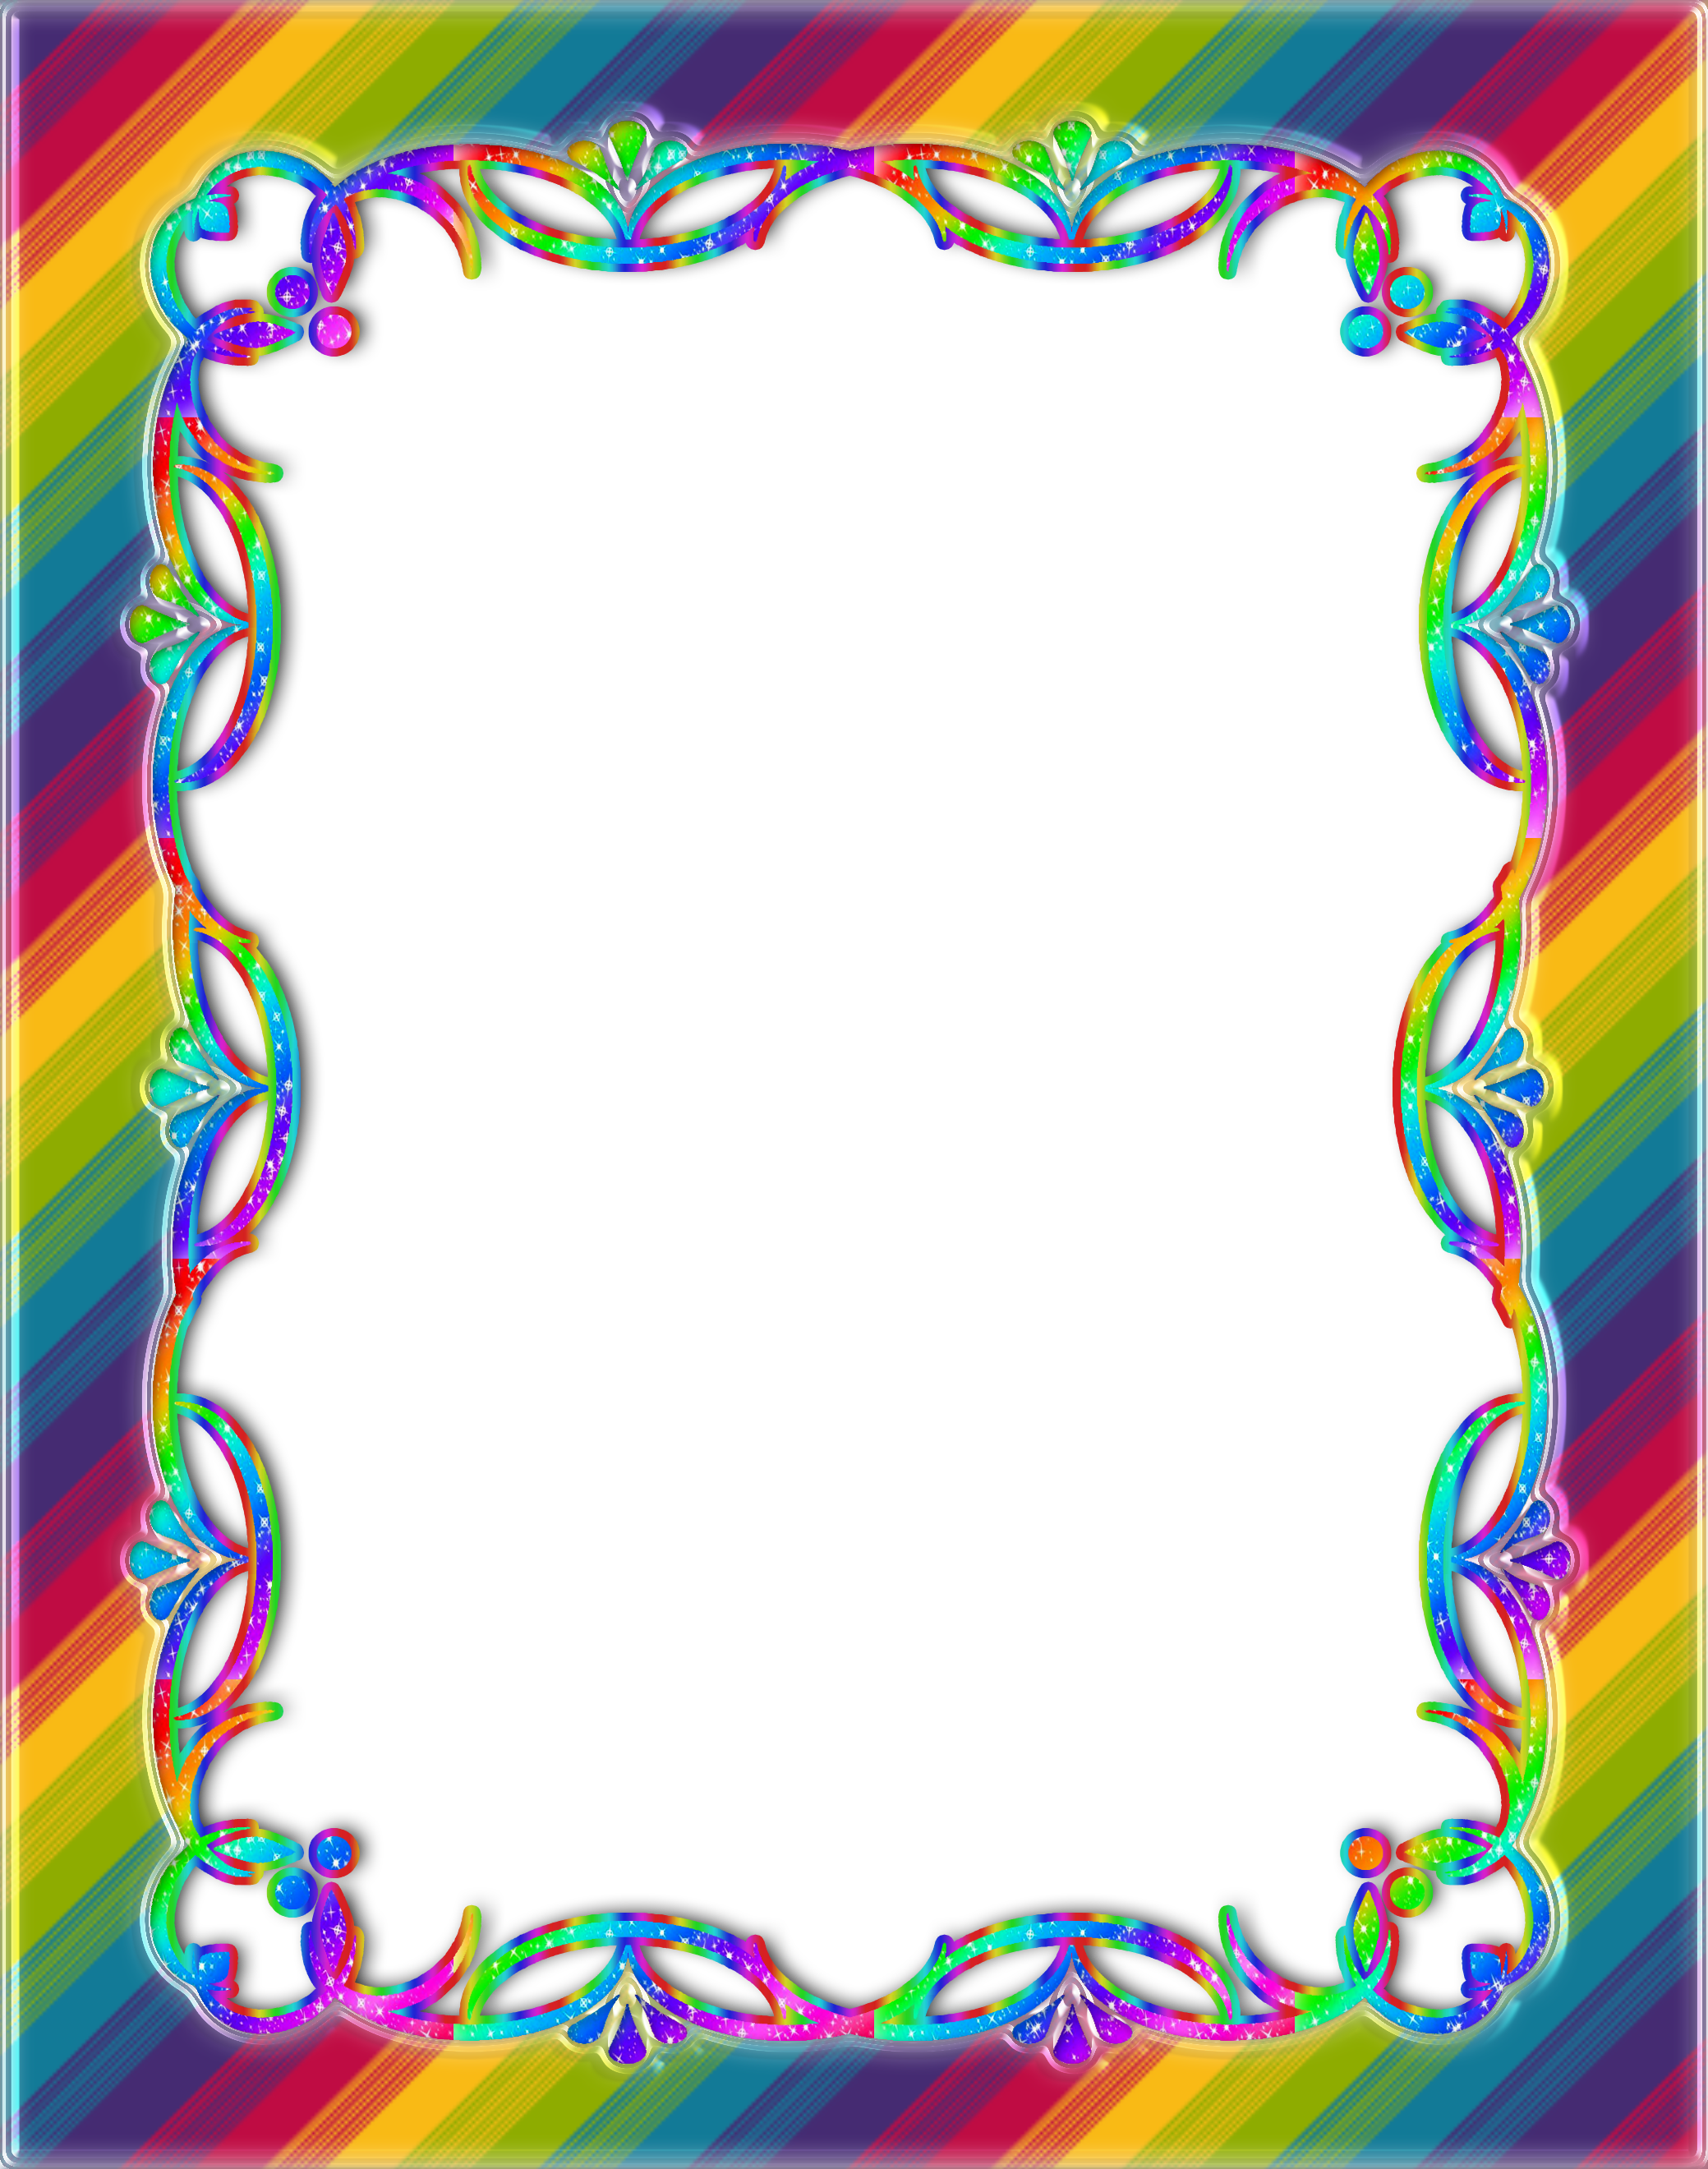 Rainbow Frame by Princessdawn755 on DeviantArt